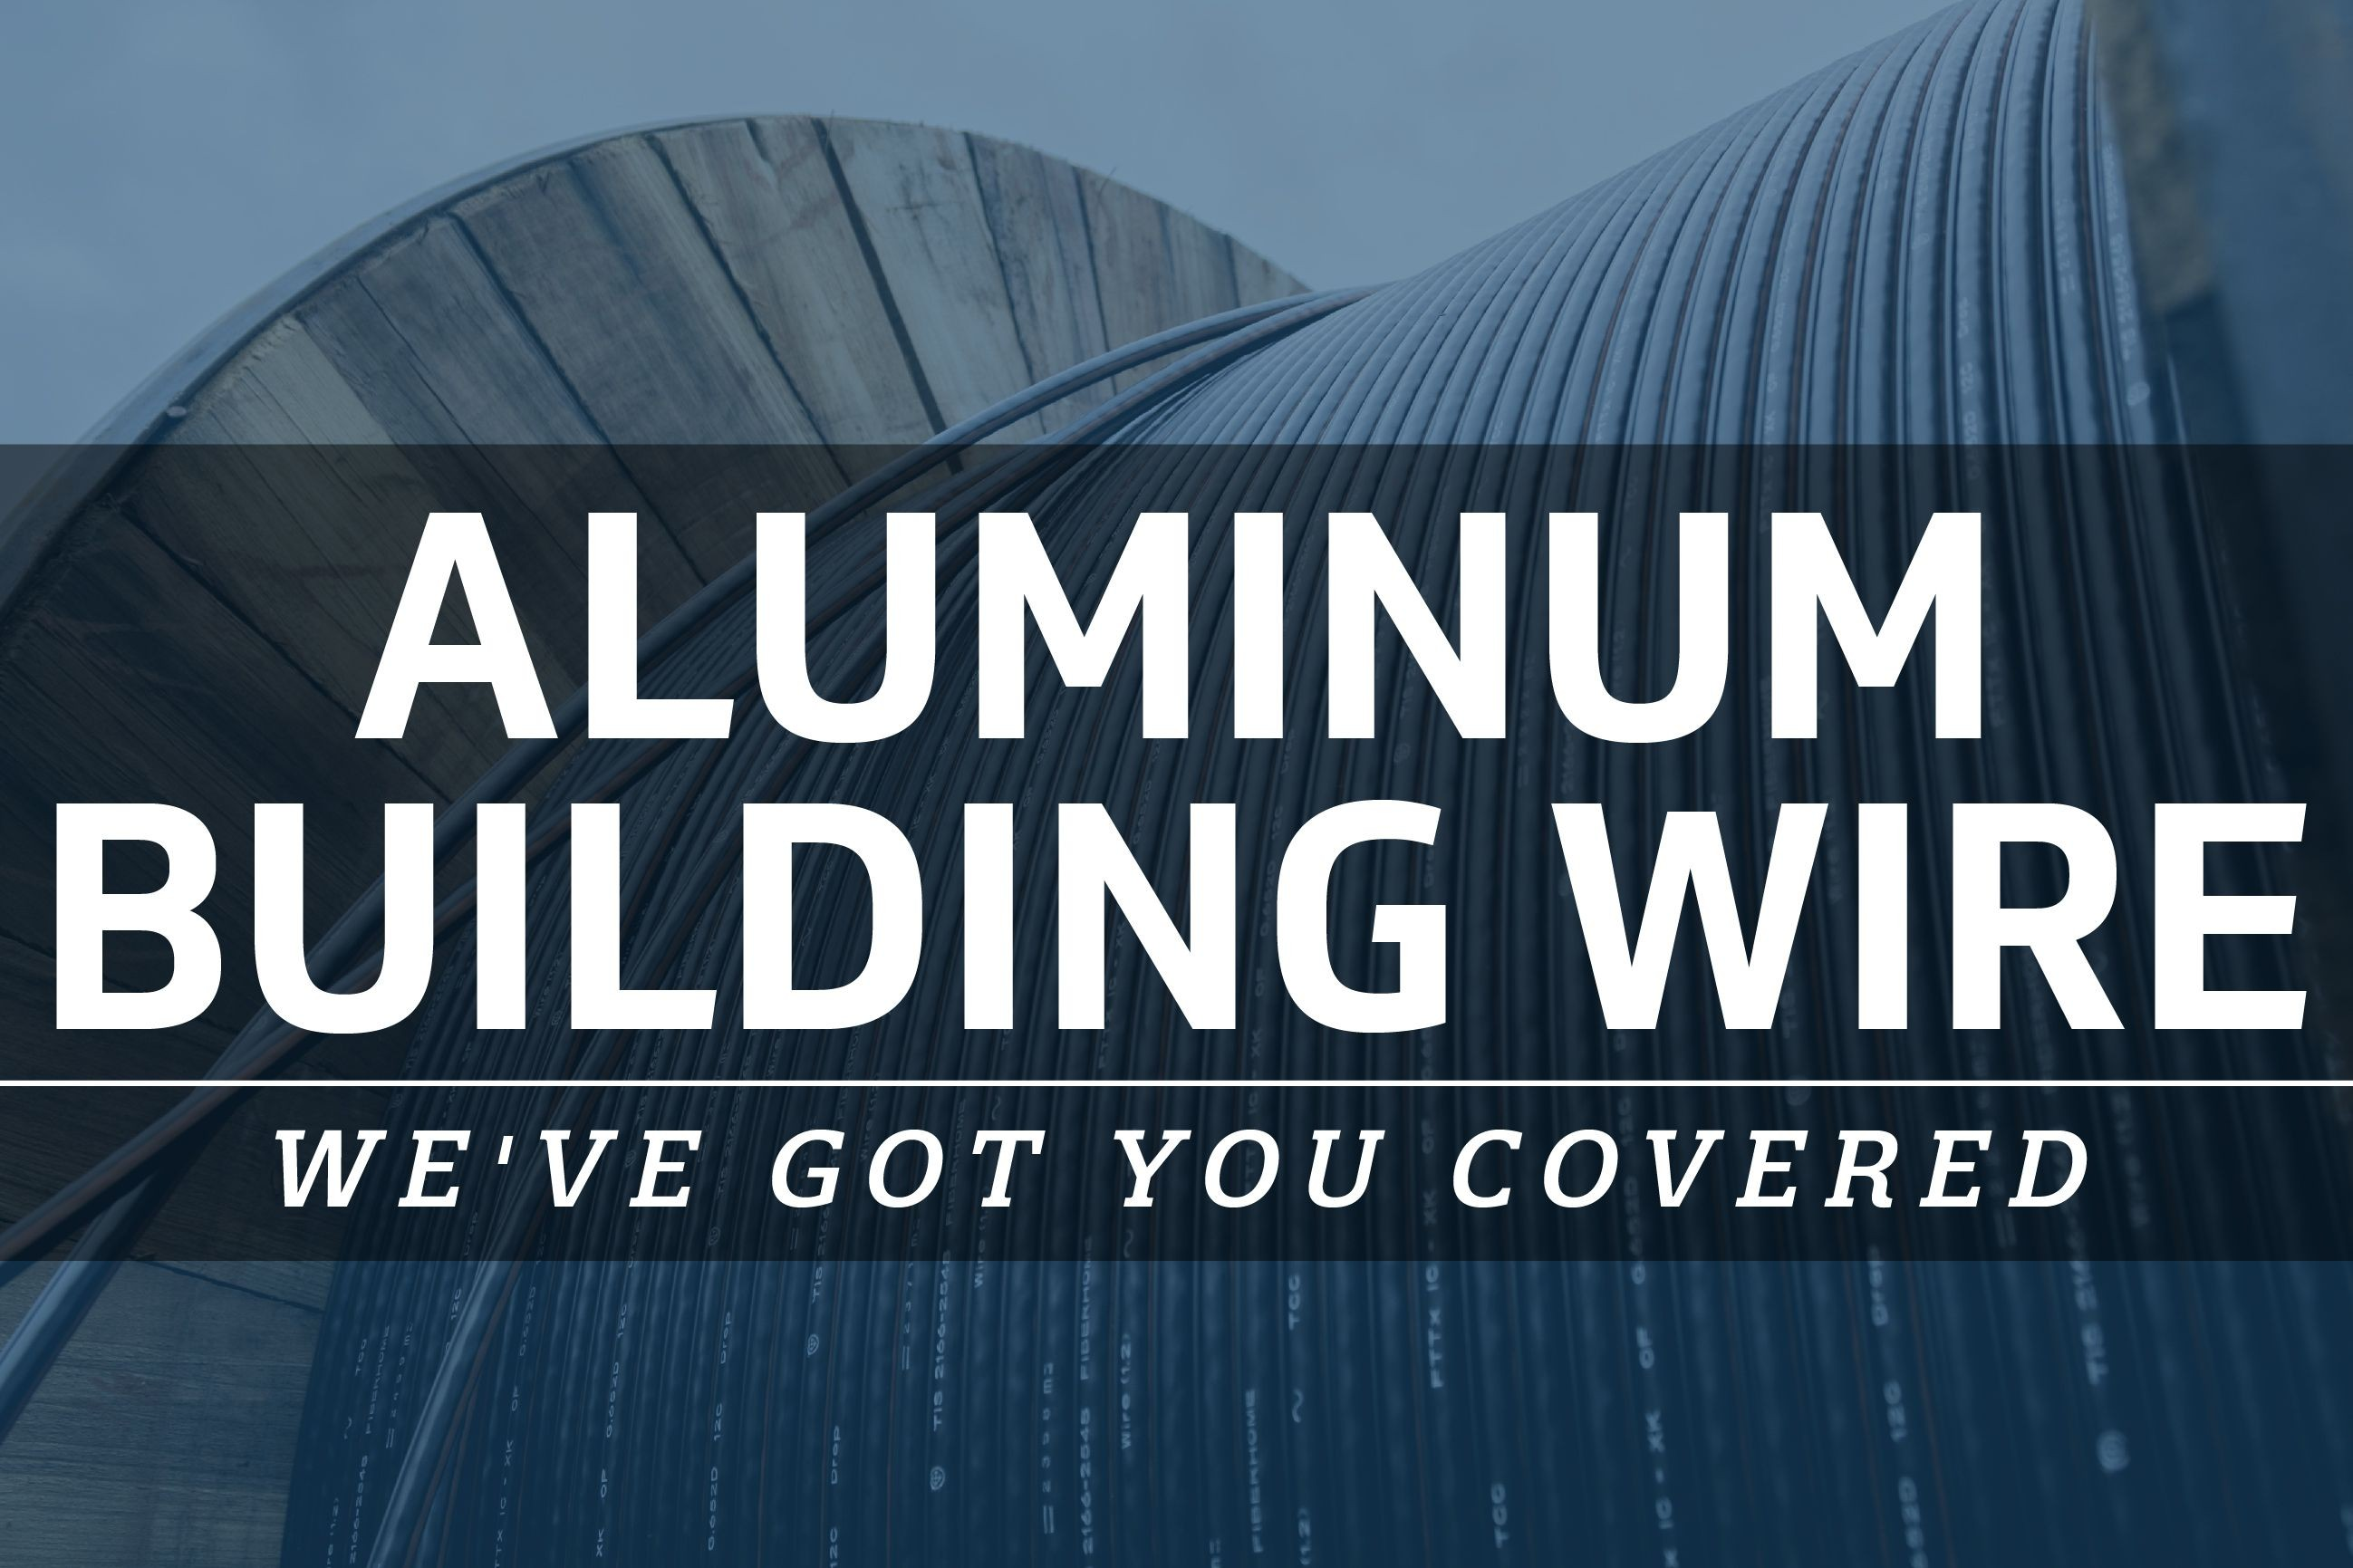 OmniCable's Top 5 Aluminum Building Wire Offerings